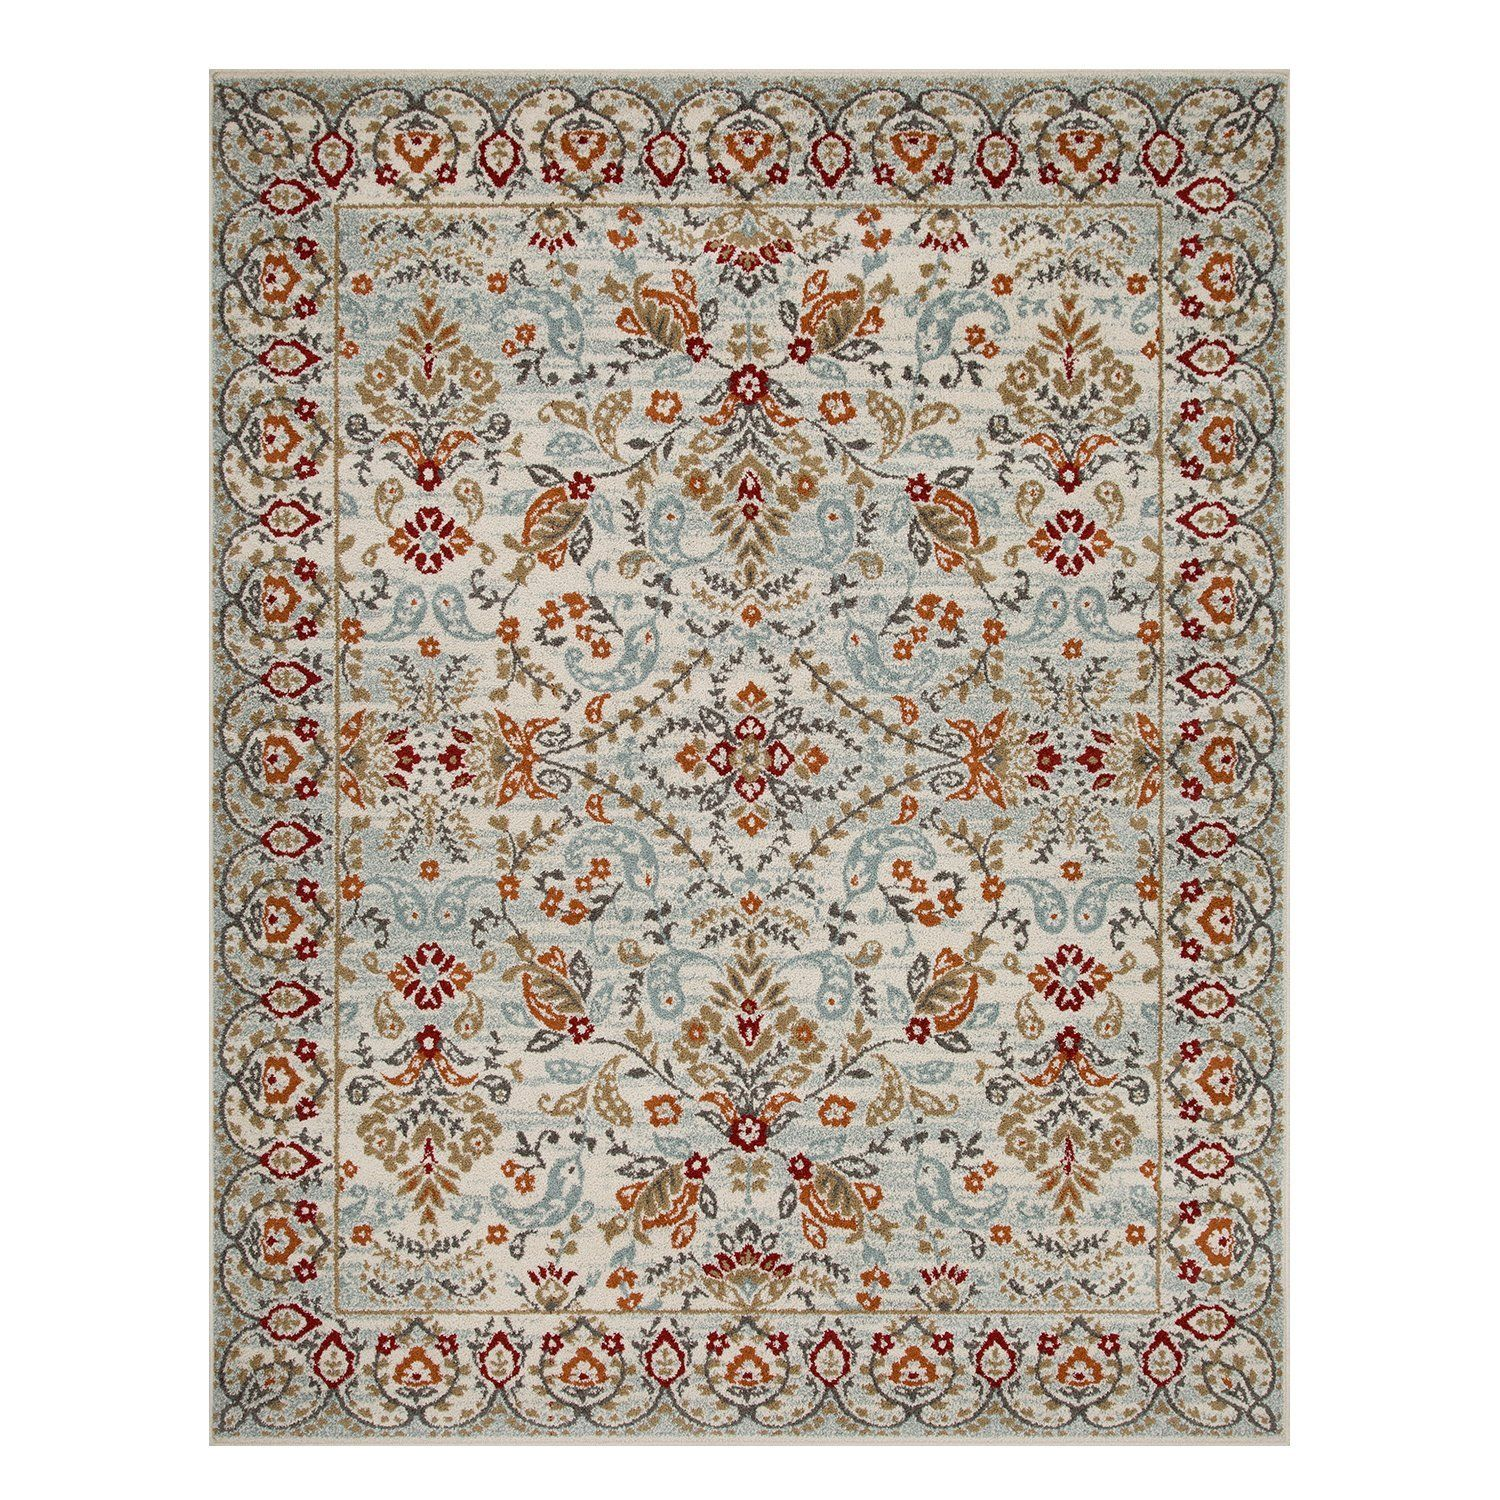 Indoor Home Area Rug Collection Floral and Vine Design, by Superior - Blue / 8 ft. x 10 ft.